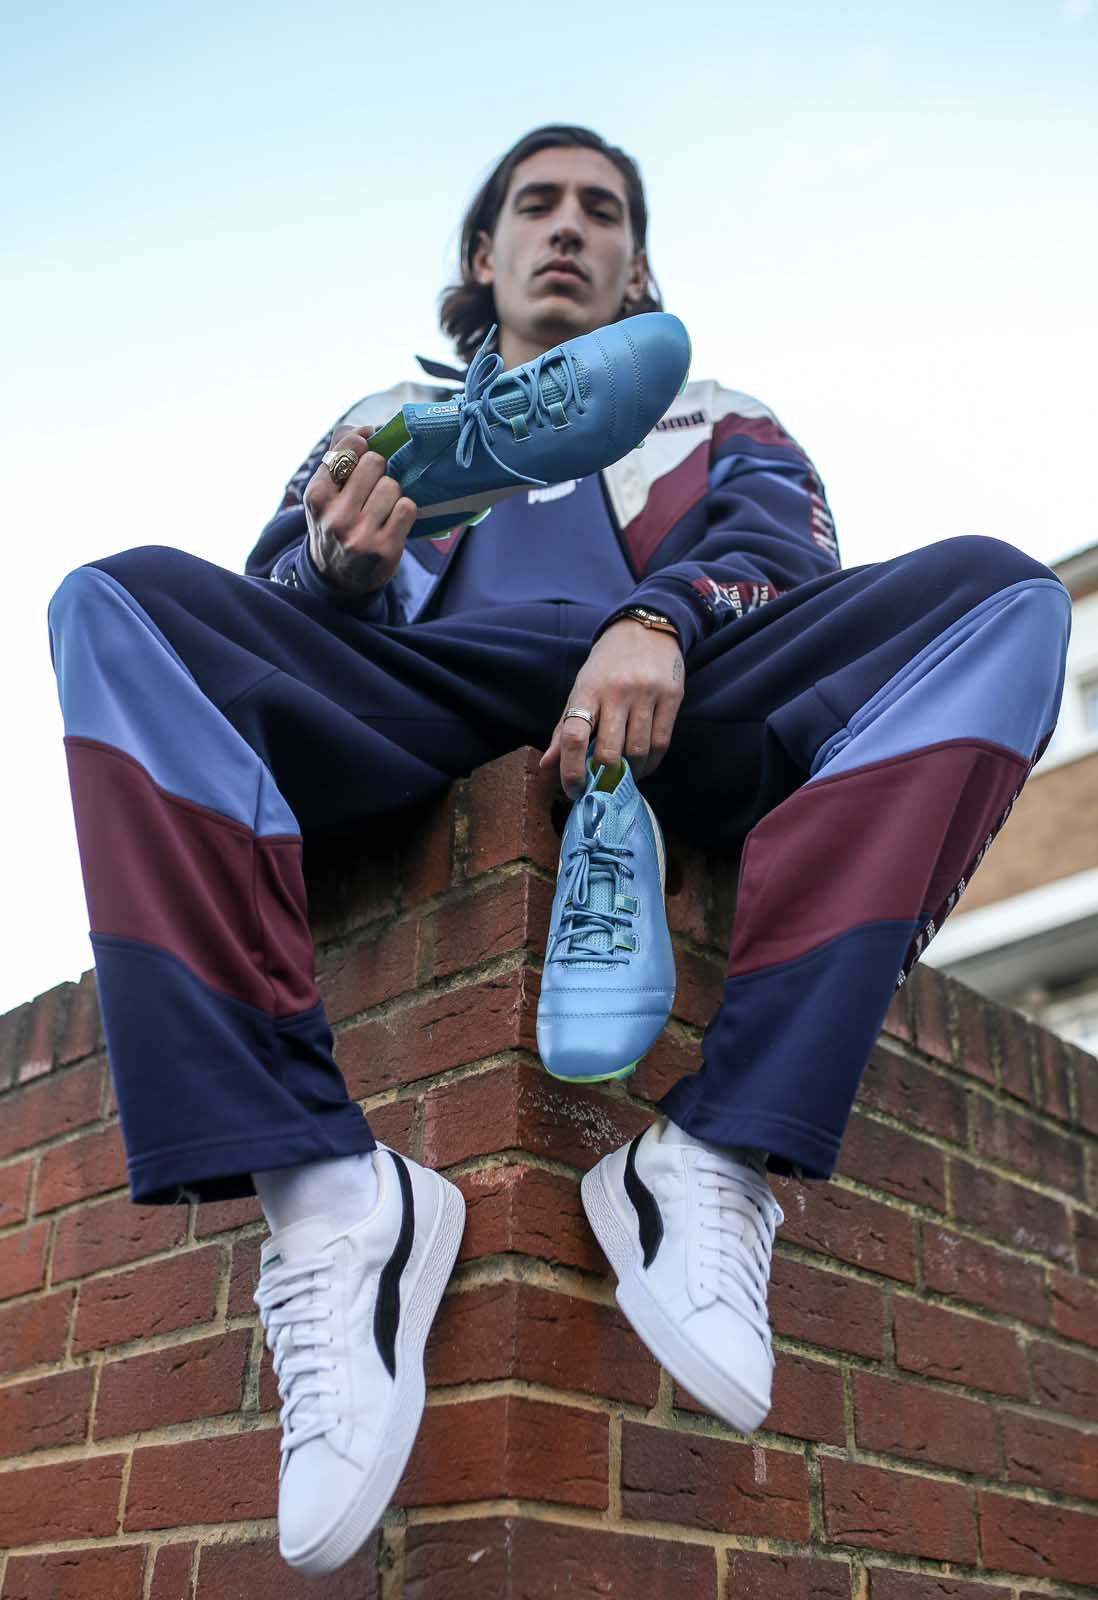 12-bellerin-one-lookbook-puma-min.jpg